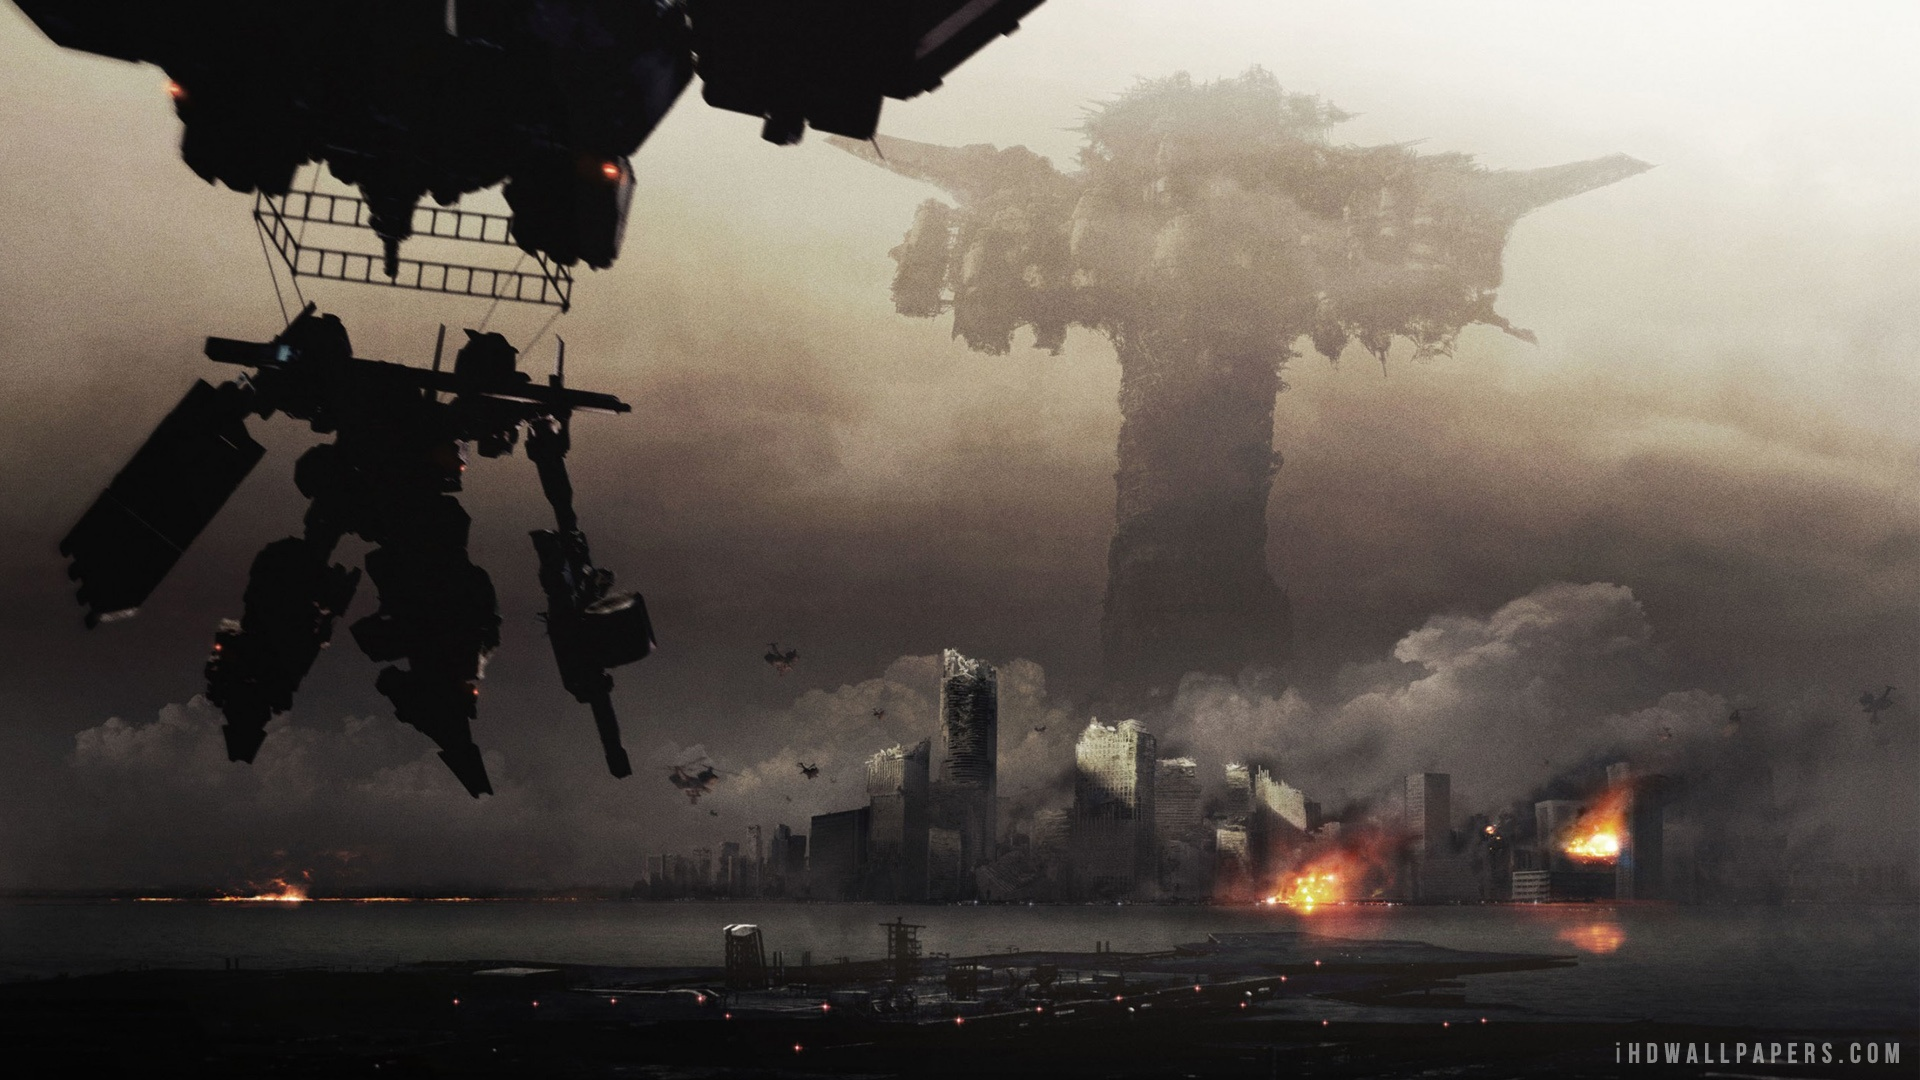 helicopter game iphone with Armored Core Wallpaper on 933560 10 New FC4 Images  Concept Art  Forums besides Watch together with Geometry Dash 6 Tips Tricks And Cheats besides Vietnam Huey Wallpaper additionally Armored Core Wallpaper.